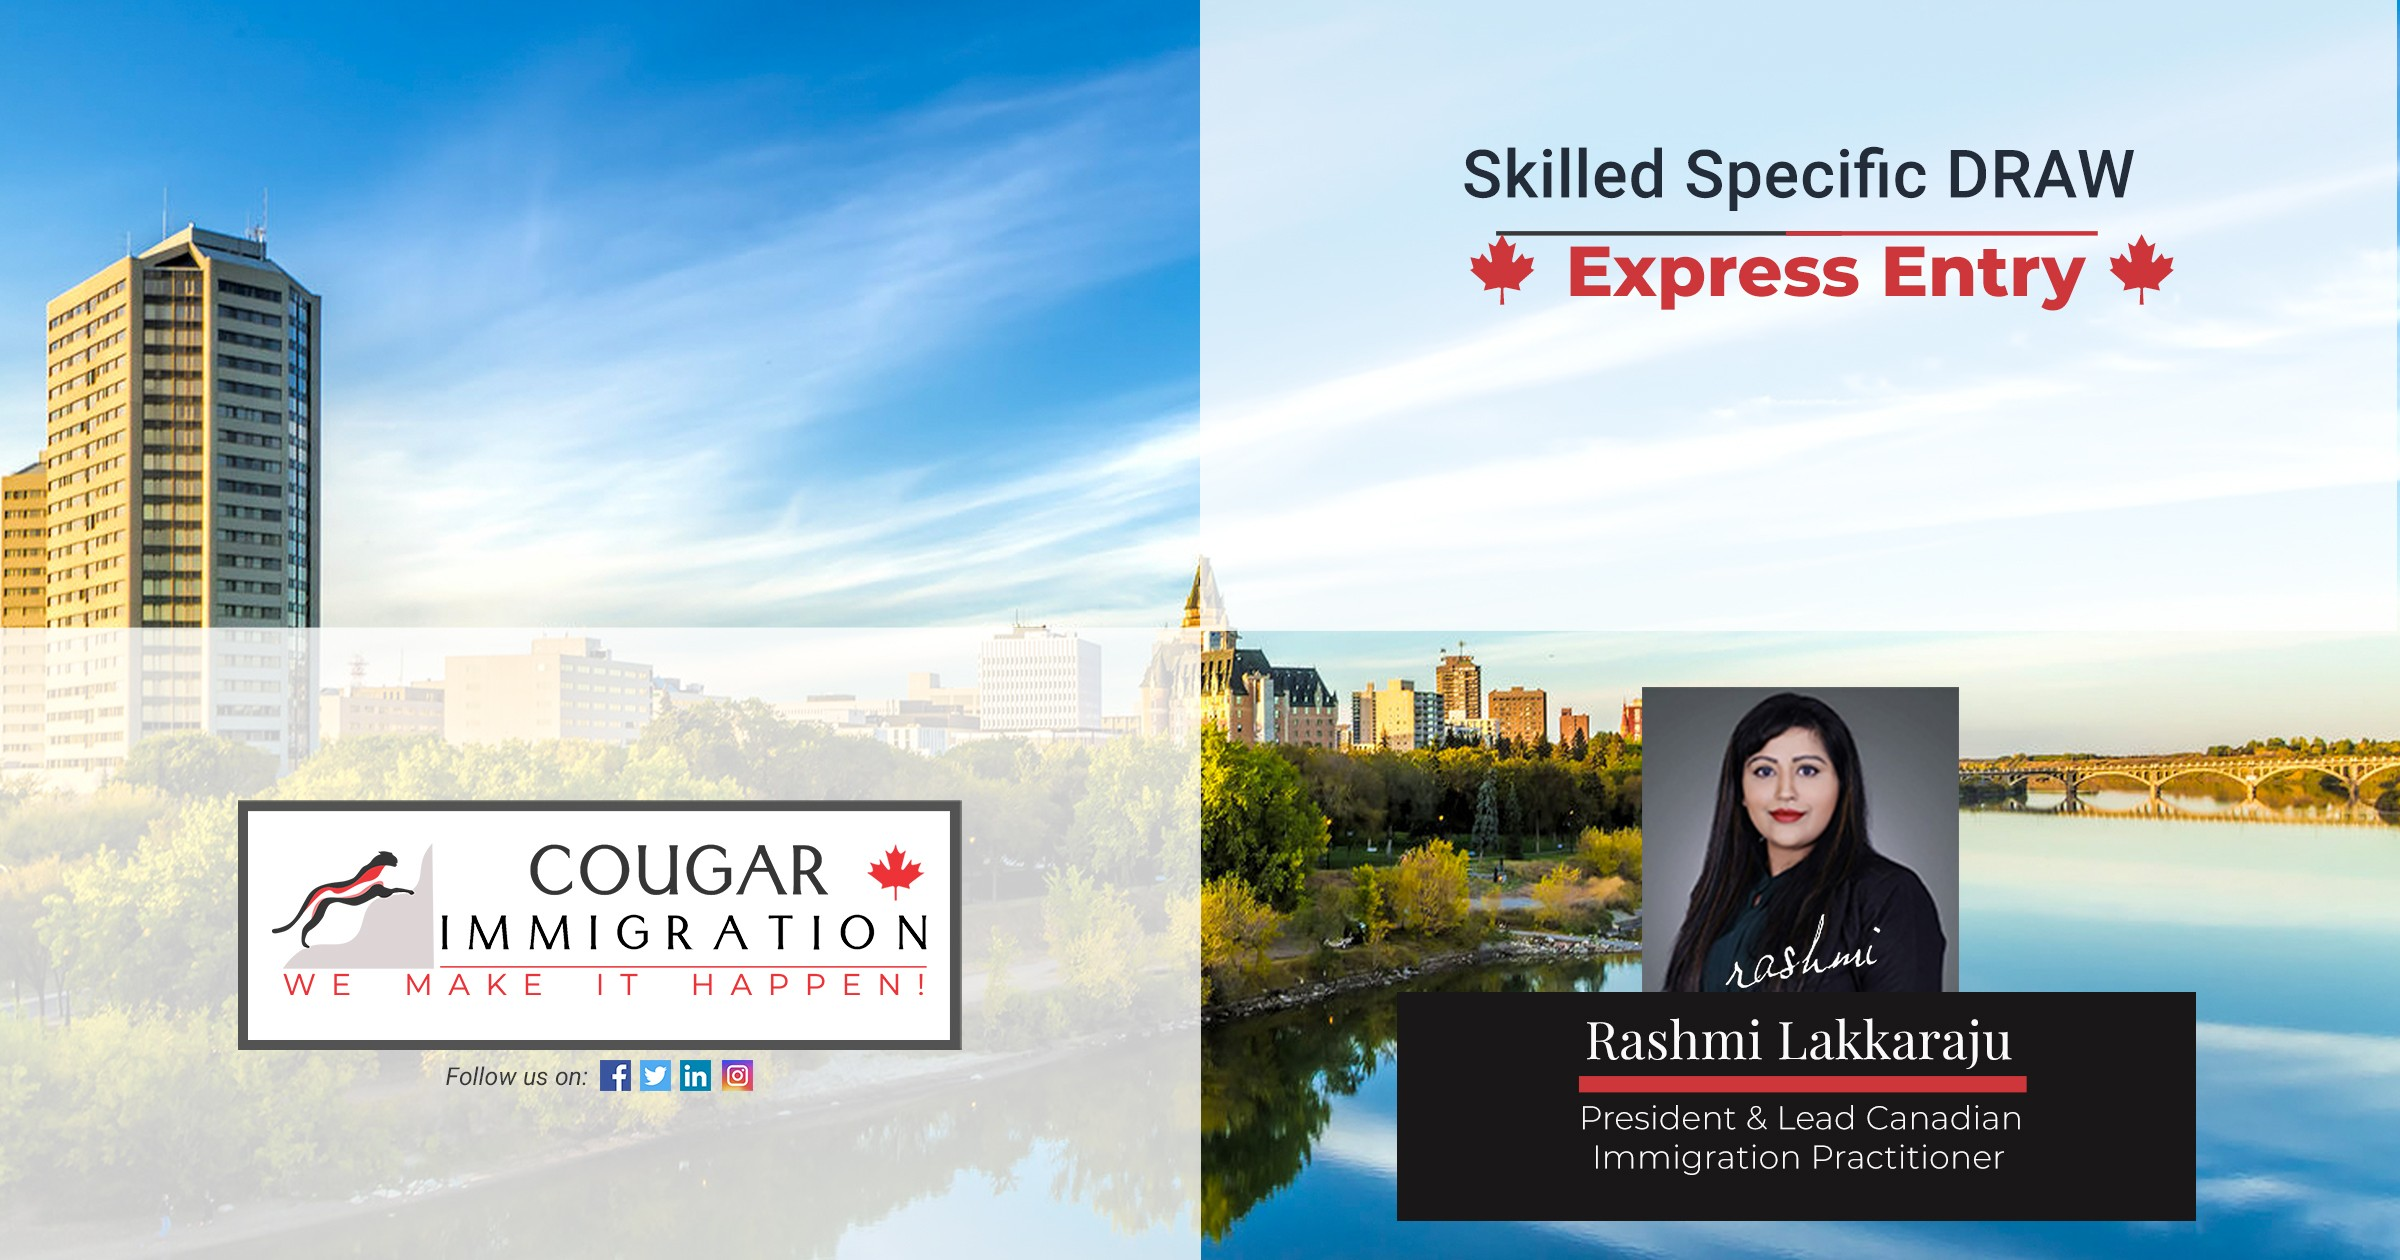 Federal Skilled Trades-specific Express Entry draw is the second of 2019 thumbnail